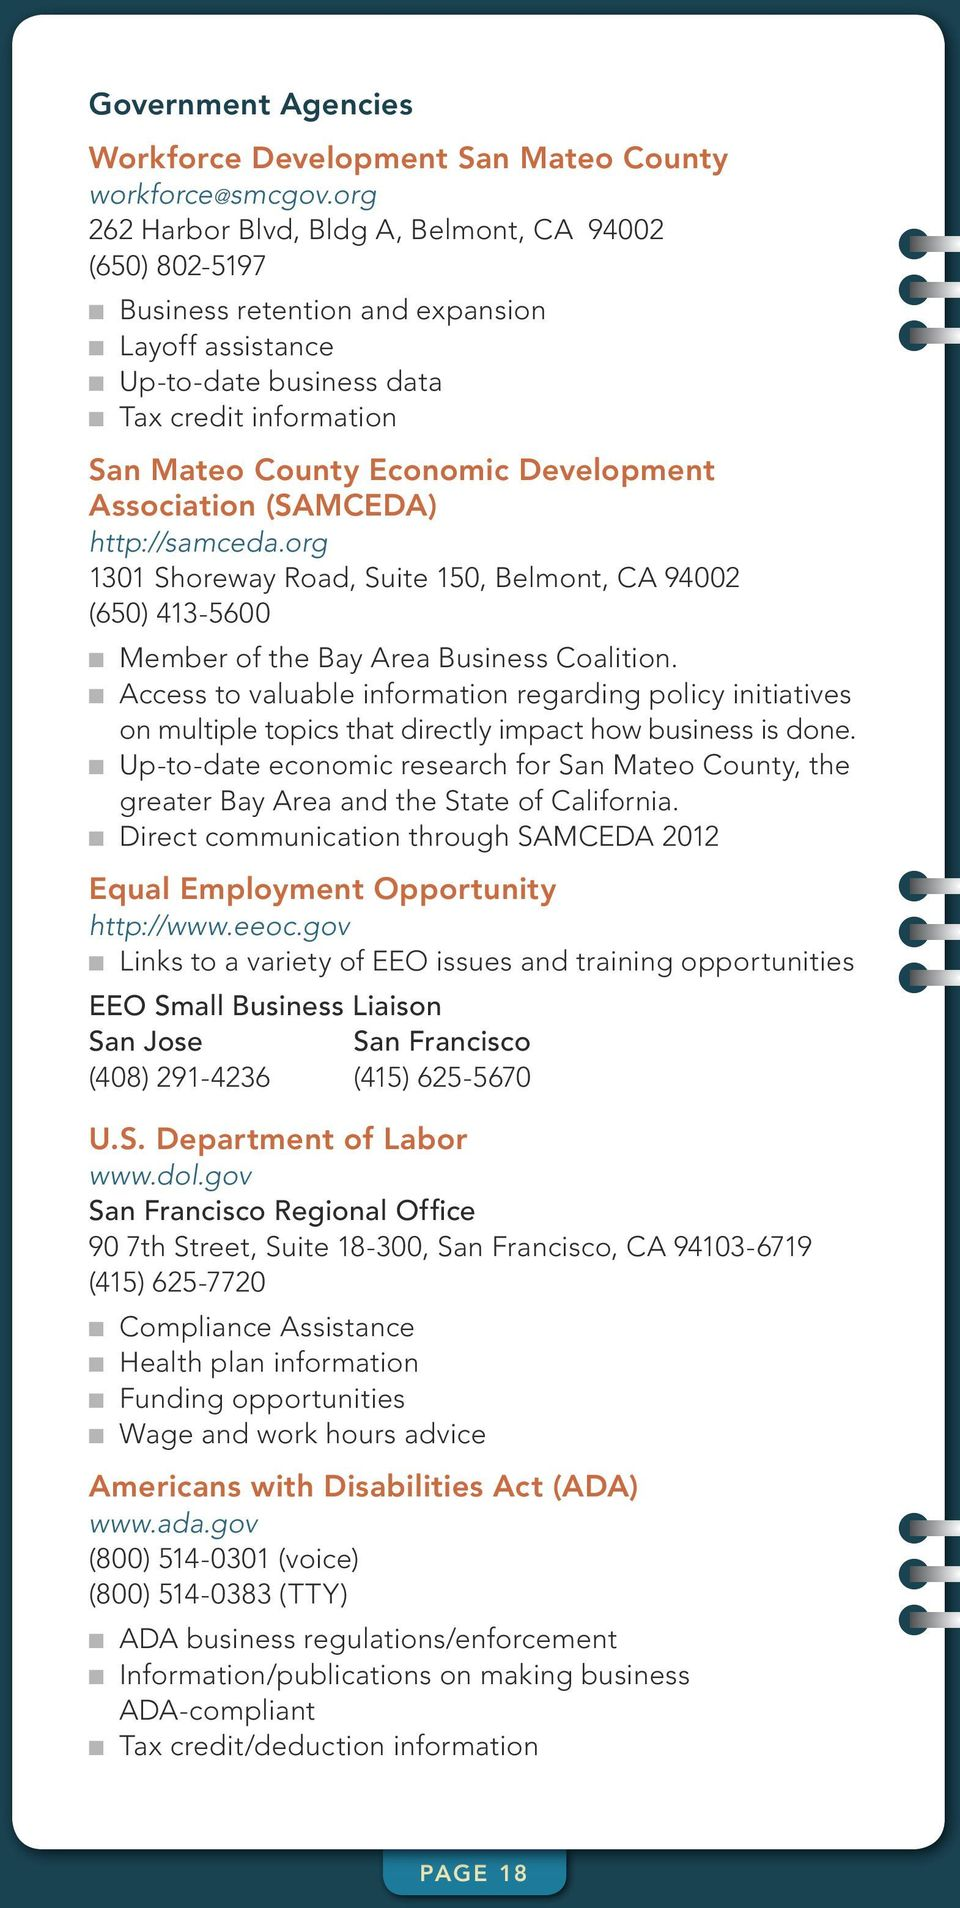 Development Association (SAMCEDA) http://samceda.org 1301 Shoreway Road, Suite 150, Belmont, CA 94002 (650) 413-5600 n Member of the Bay Area Business Coalition.